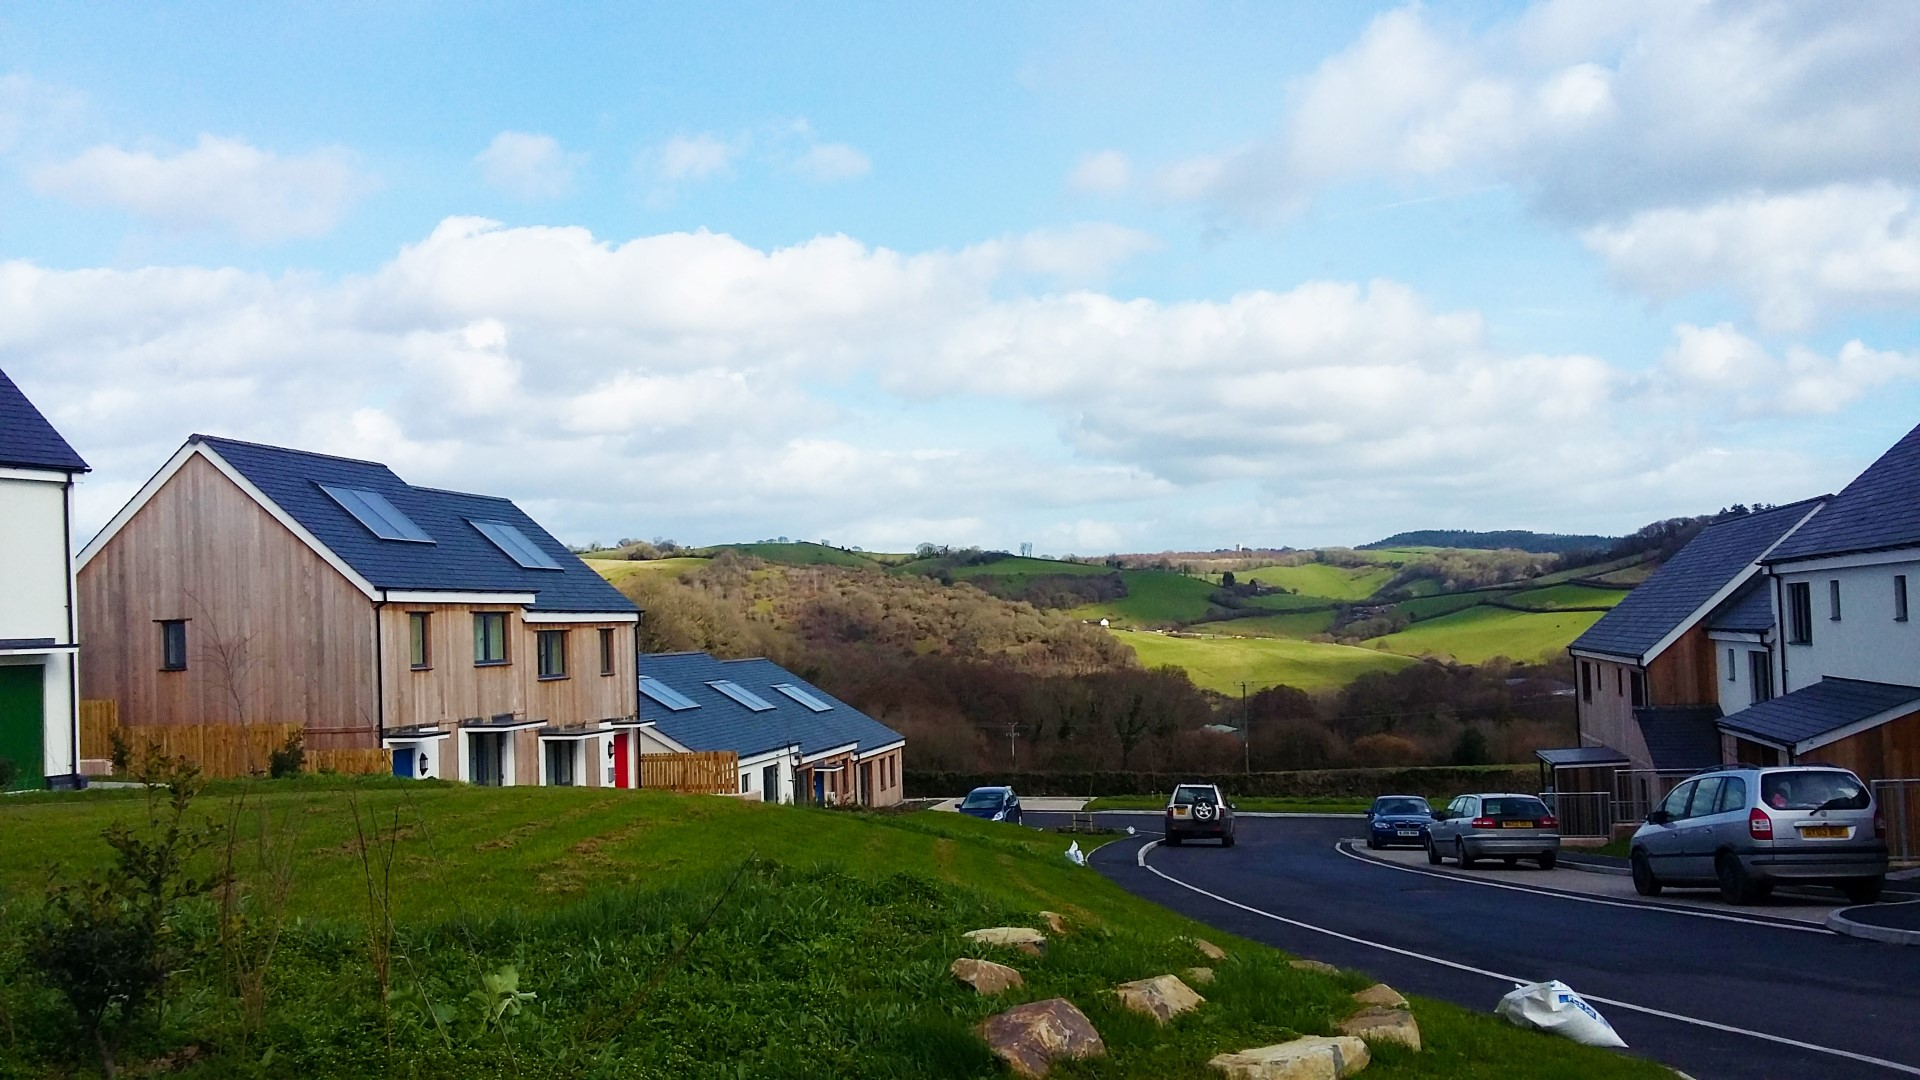 Christow affordable housing scheme